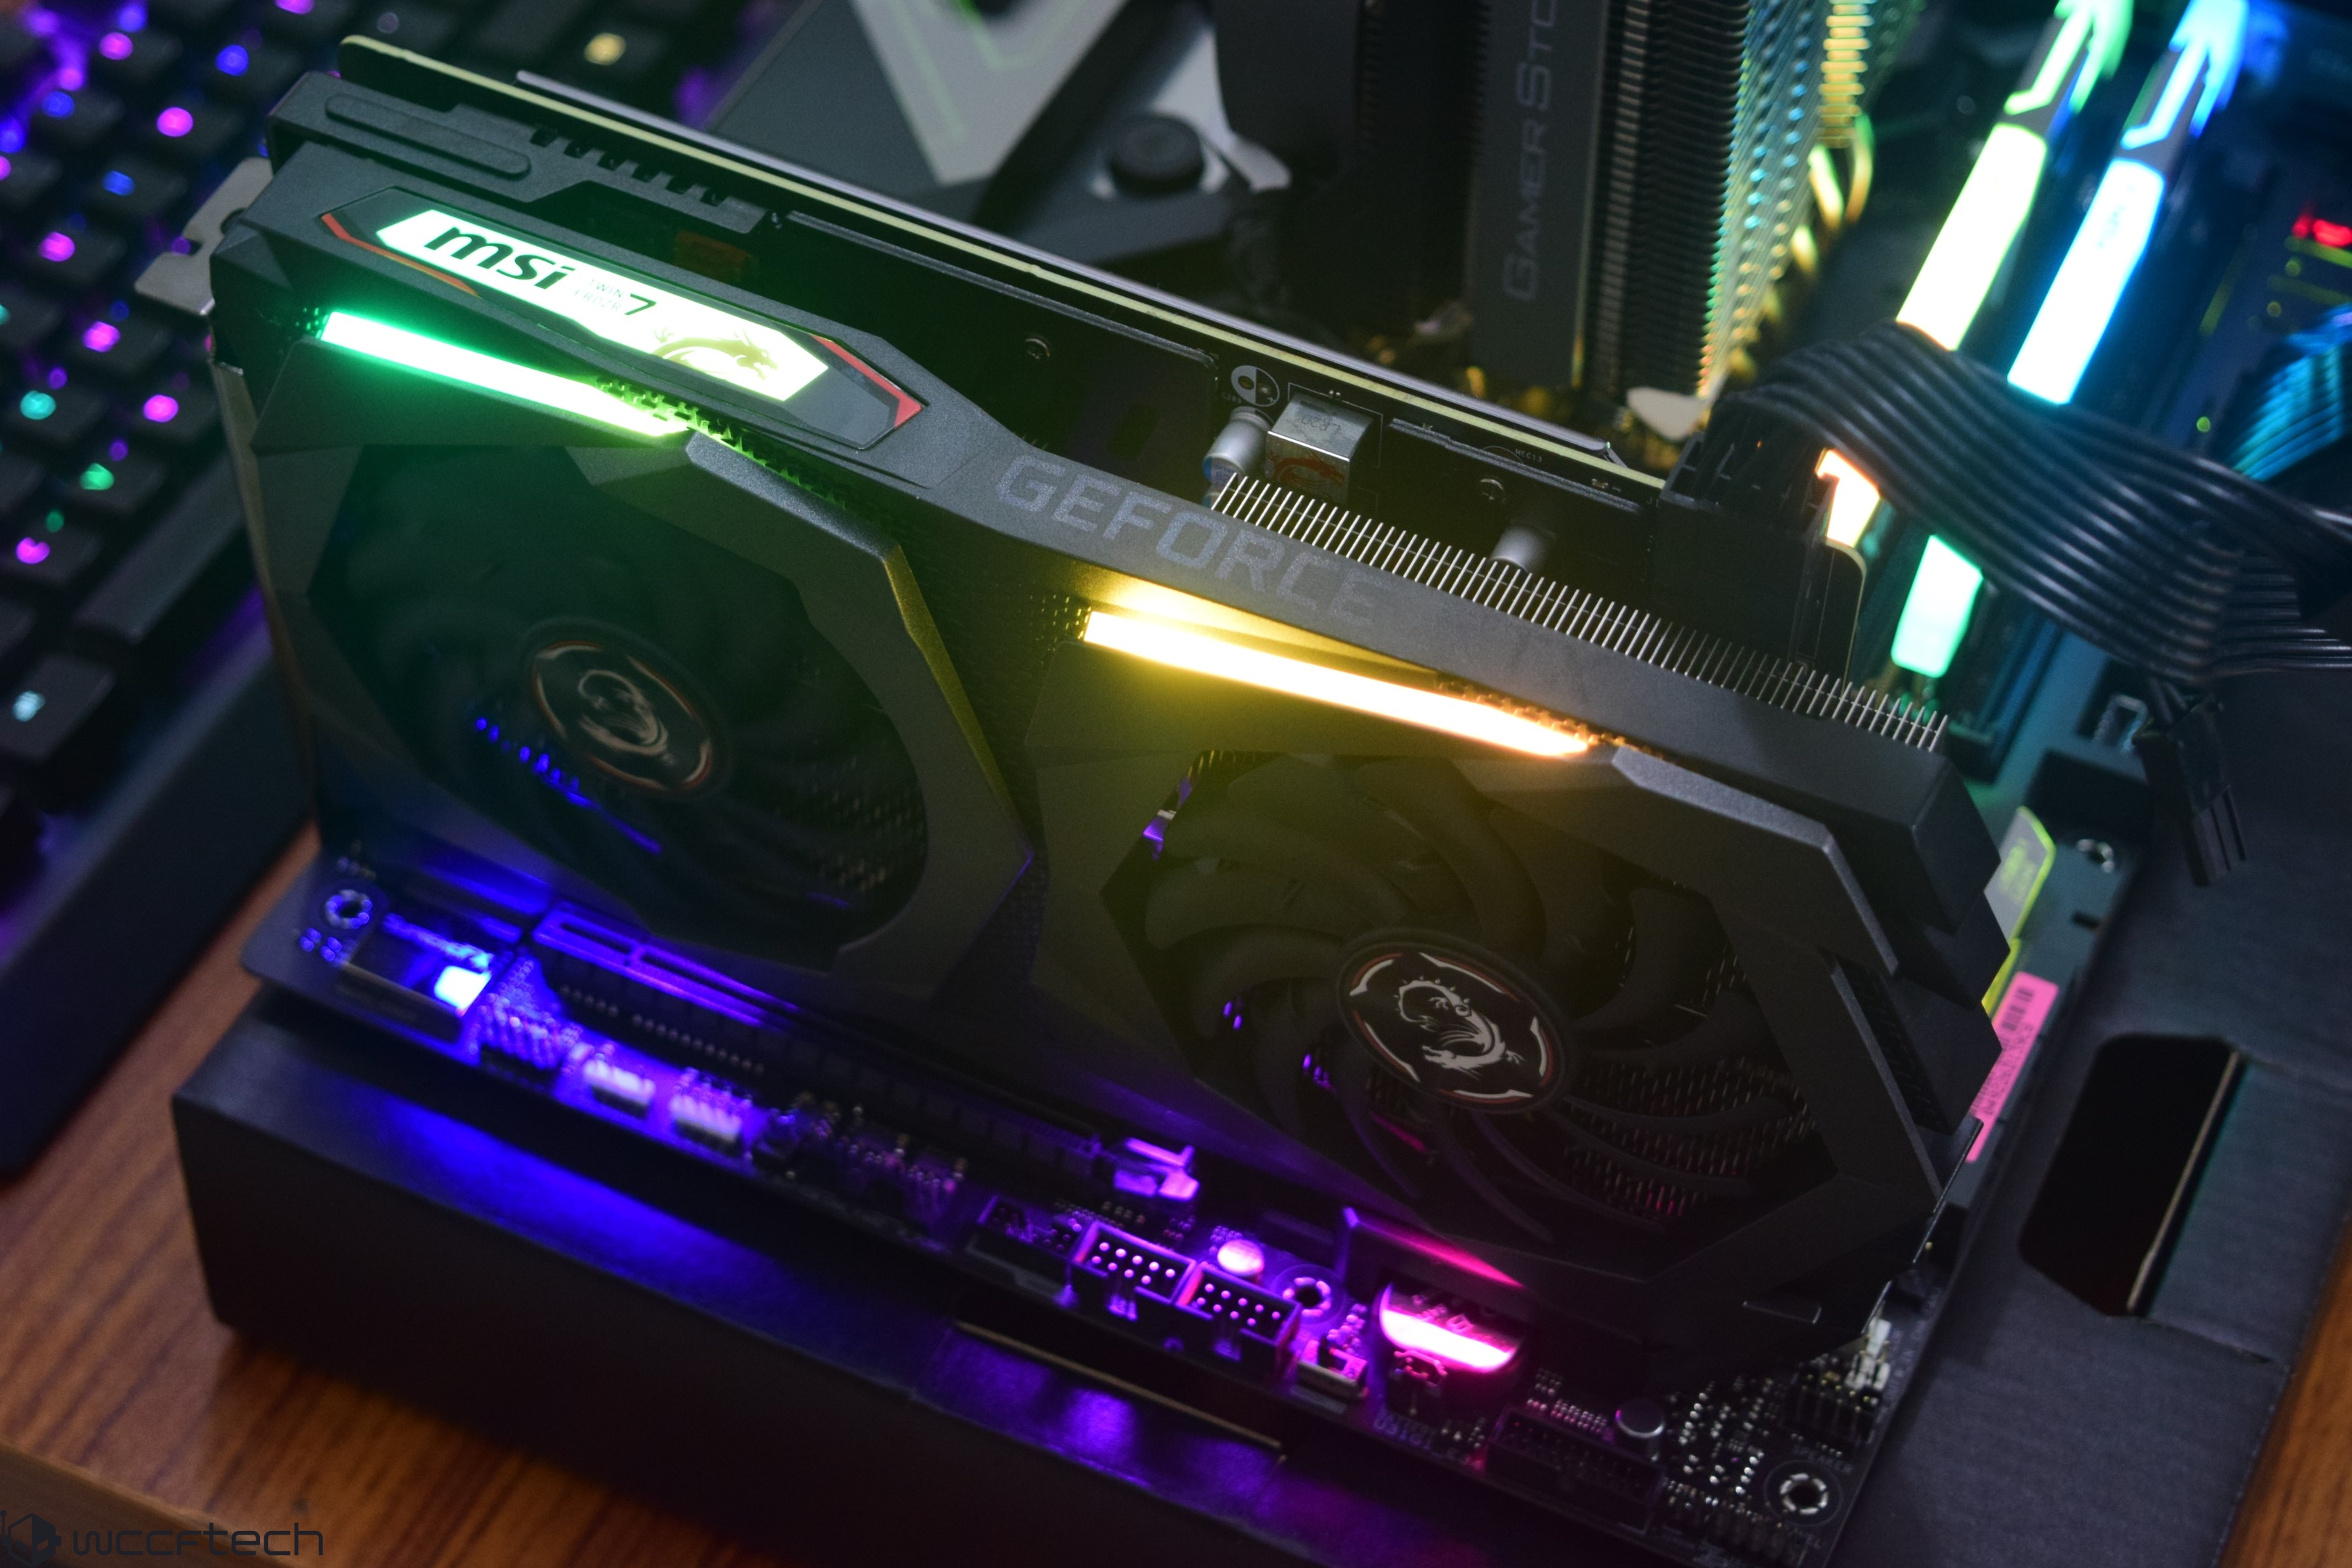 NVIDIA GeForce GTX 1650 4 GB GDDR5 Graphics Card Review Ft  MSI